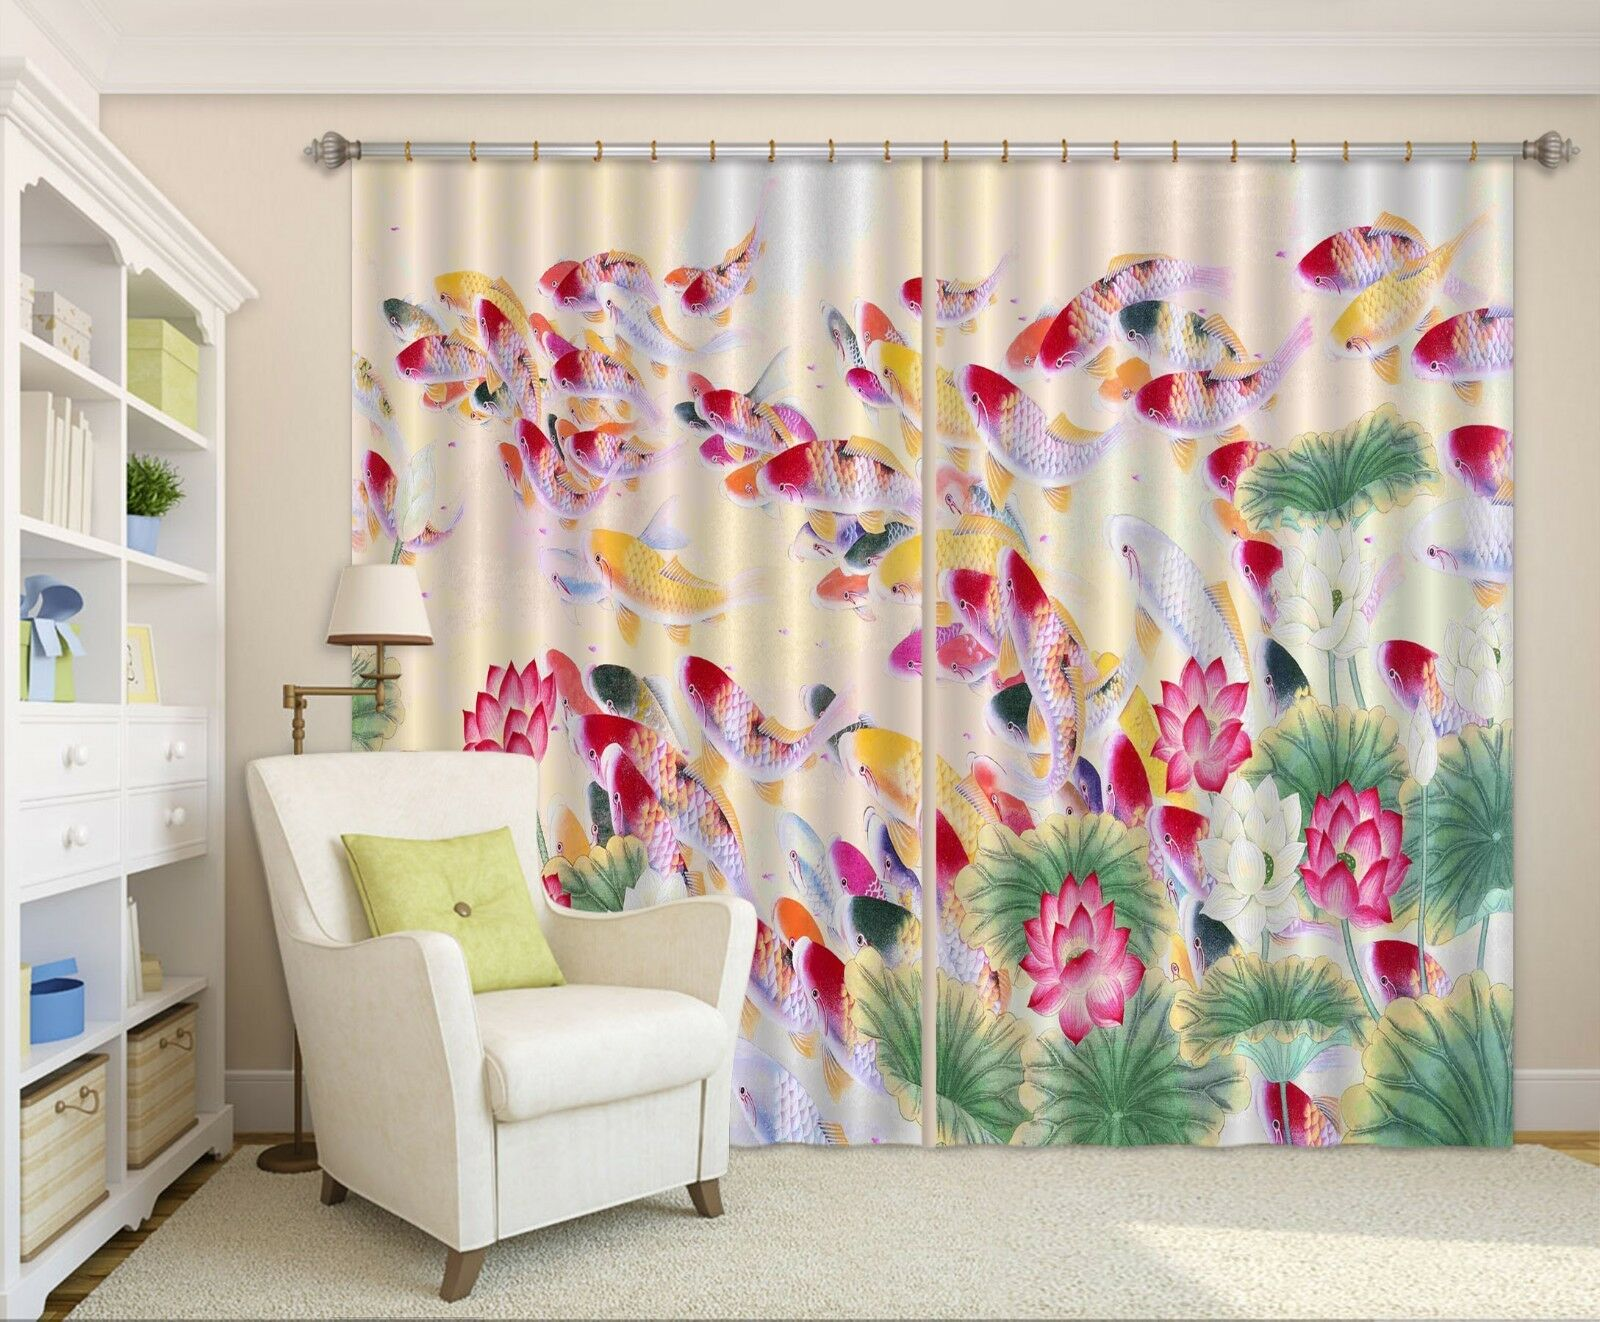 3D Carp Paint 9 Blockout Photo Curtain Printing Curtains Drapes Fabric Window CA